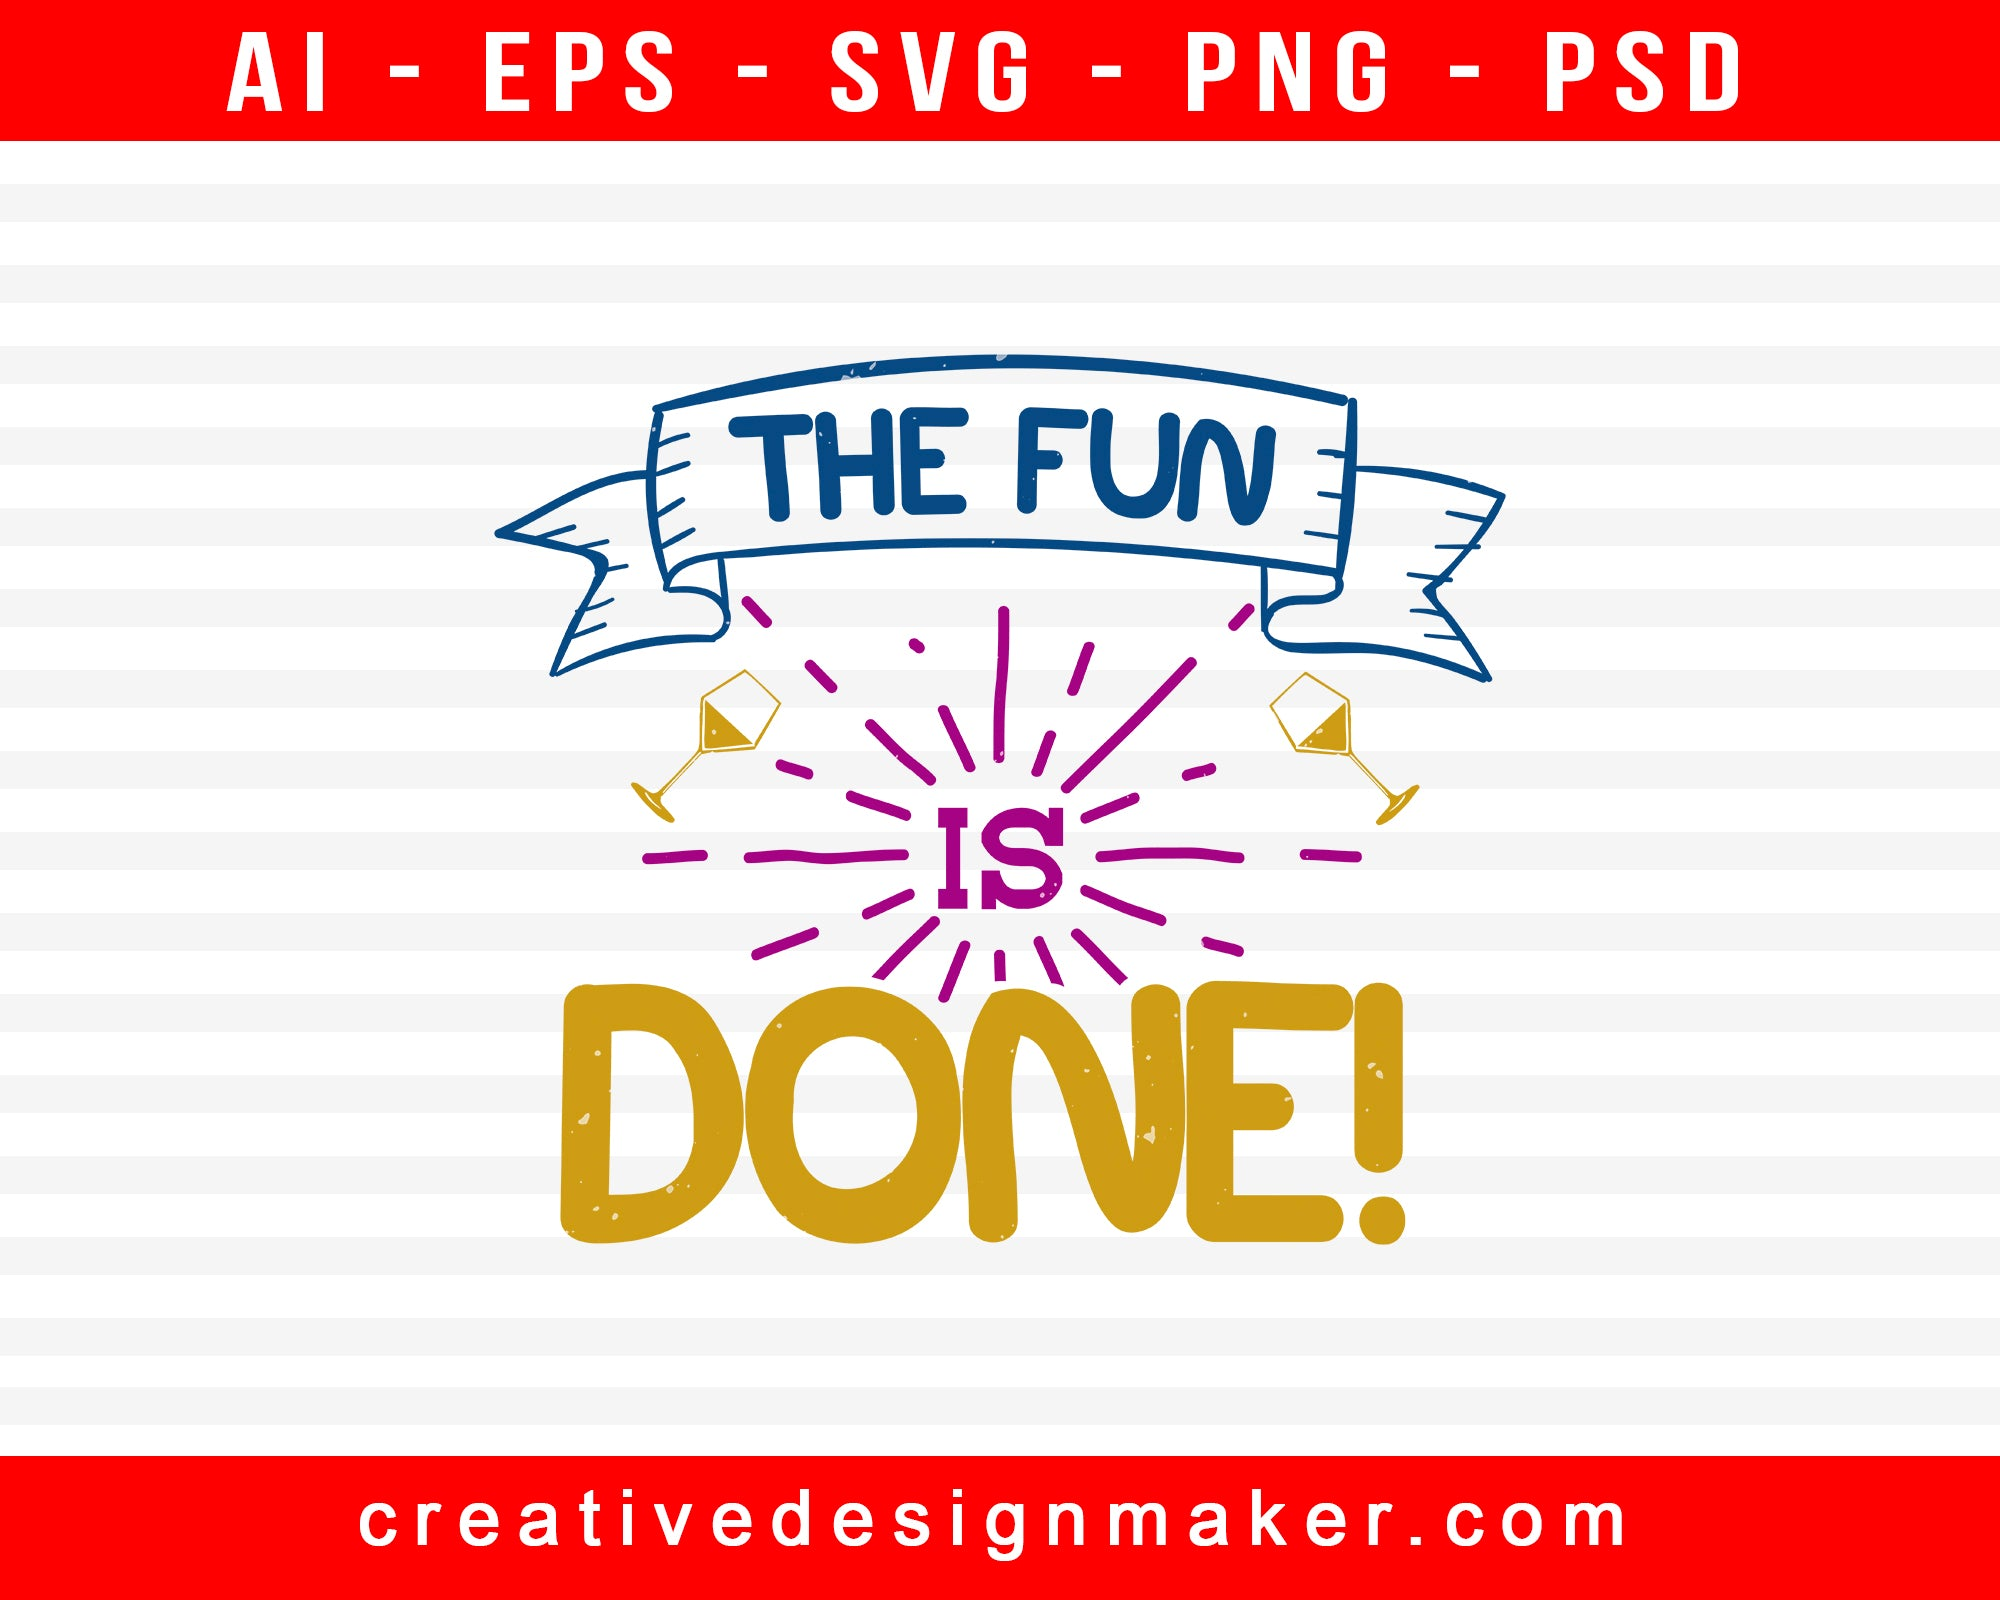 The Fun Is Done! Bachelor Party Print Ready Editable T-Shirt SVG Design!